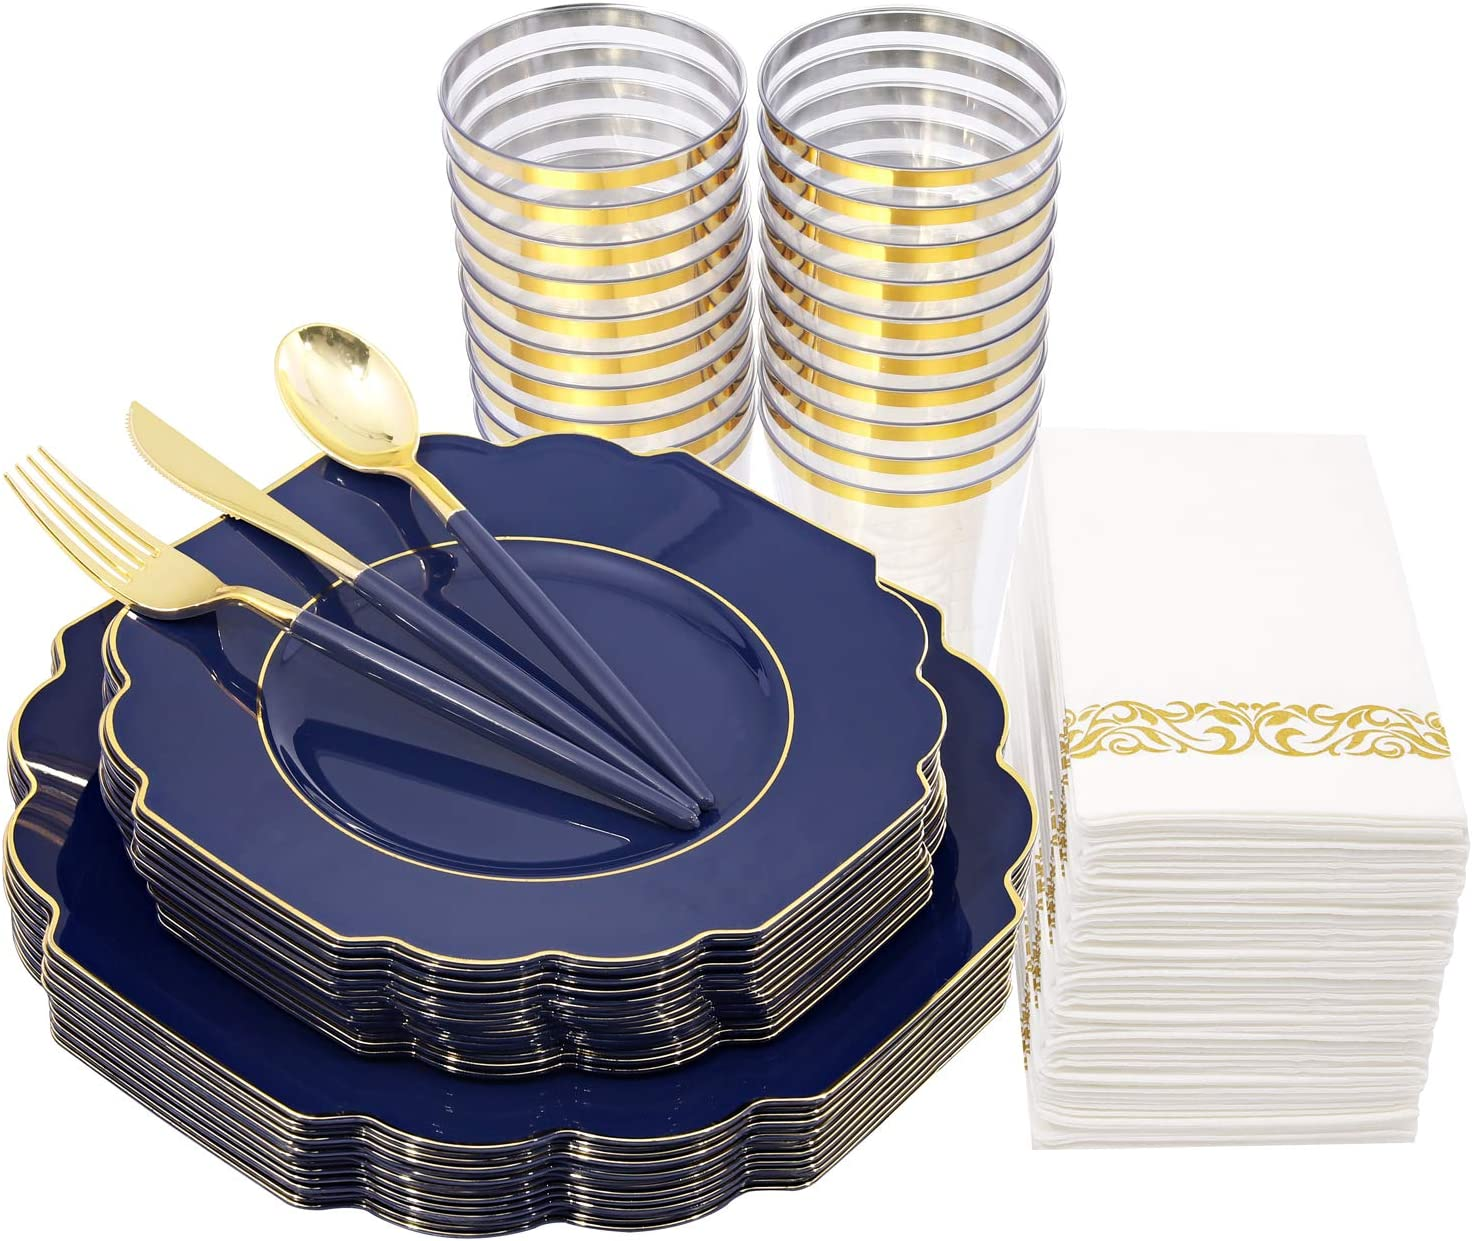 Nervure 140pcs Blue Plastic Plates & Gold Plastic Silverware with Blue Handle - Gold Disposable Plates Include 40Plates, 20Forks, 20Knives, 20Spoons, 20Cups, 20Napkins - Perfect for Christmas& Parties